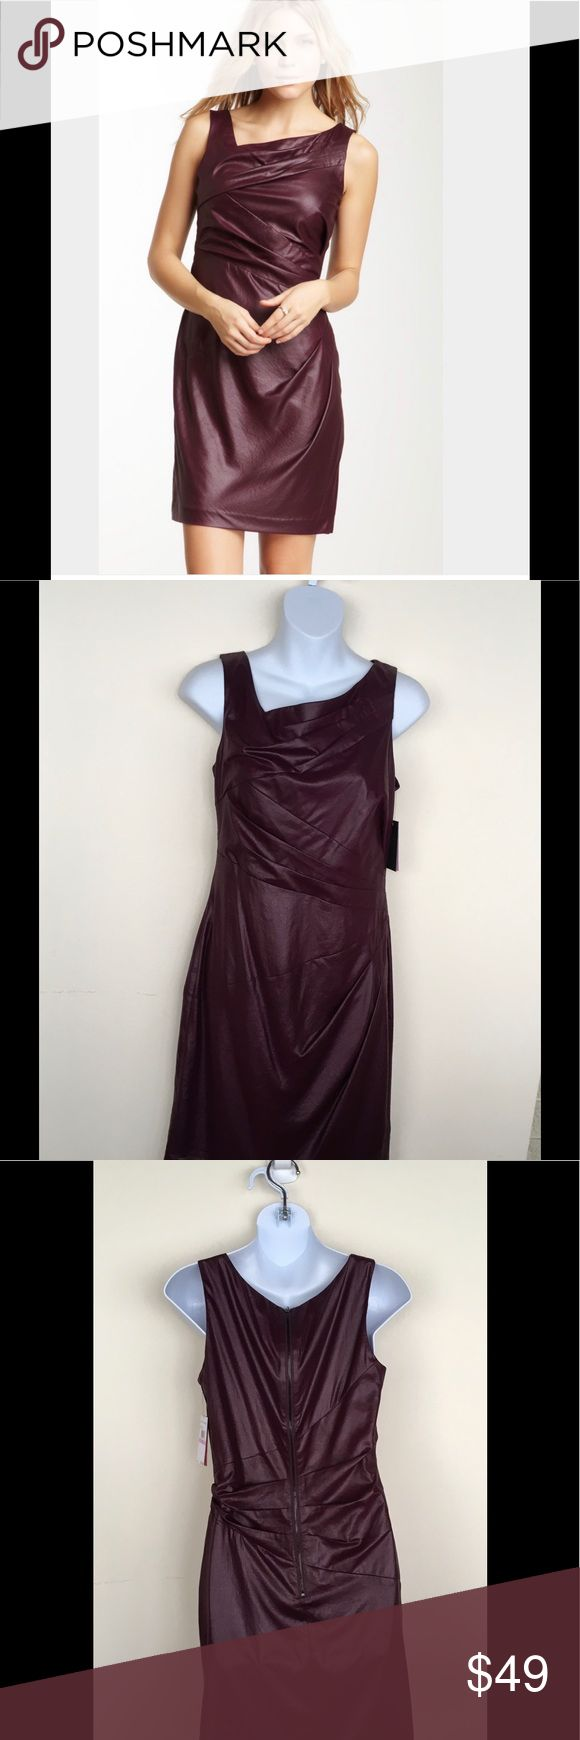 NEW Vince Camuto Deep Berry Dress Vince Camto dress in deep berry.  Has an almost leather like look.  Beautiful under a neutral jacket.  Fabulous with neutral high heel sandals for spring weddings and events.  Smoke free, pet free home Vince Camuto Dresses Mini